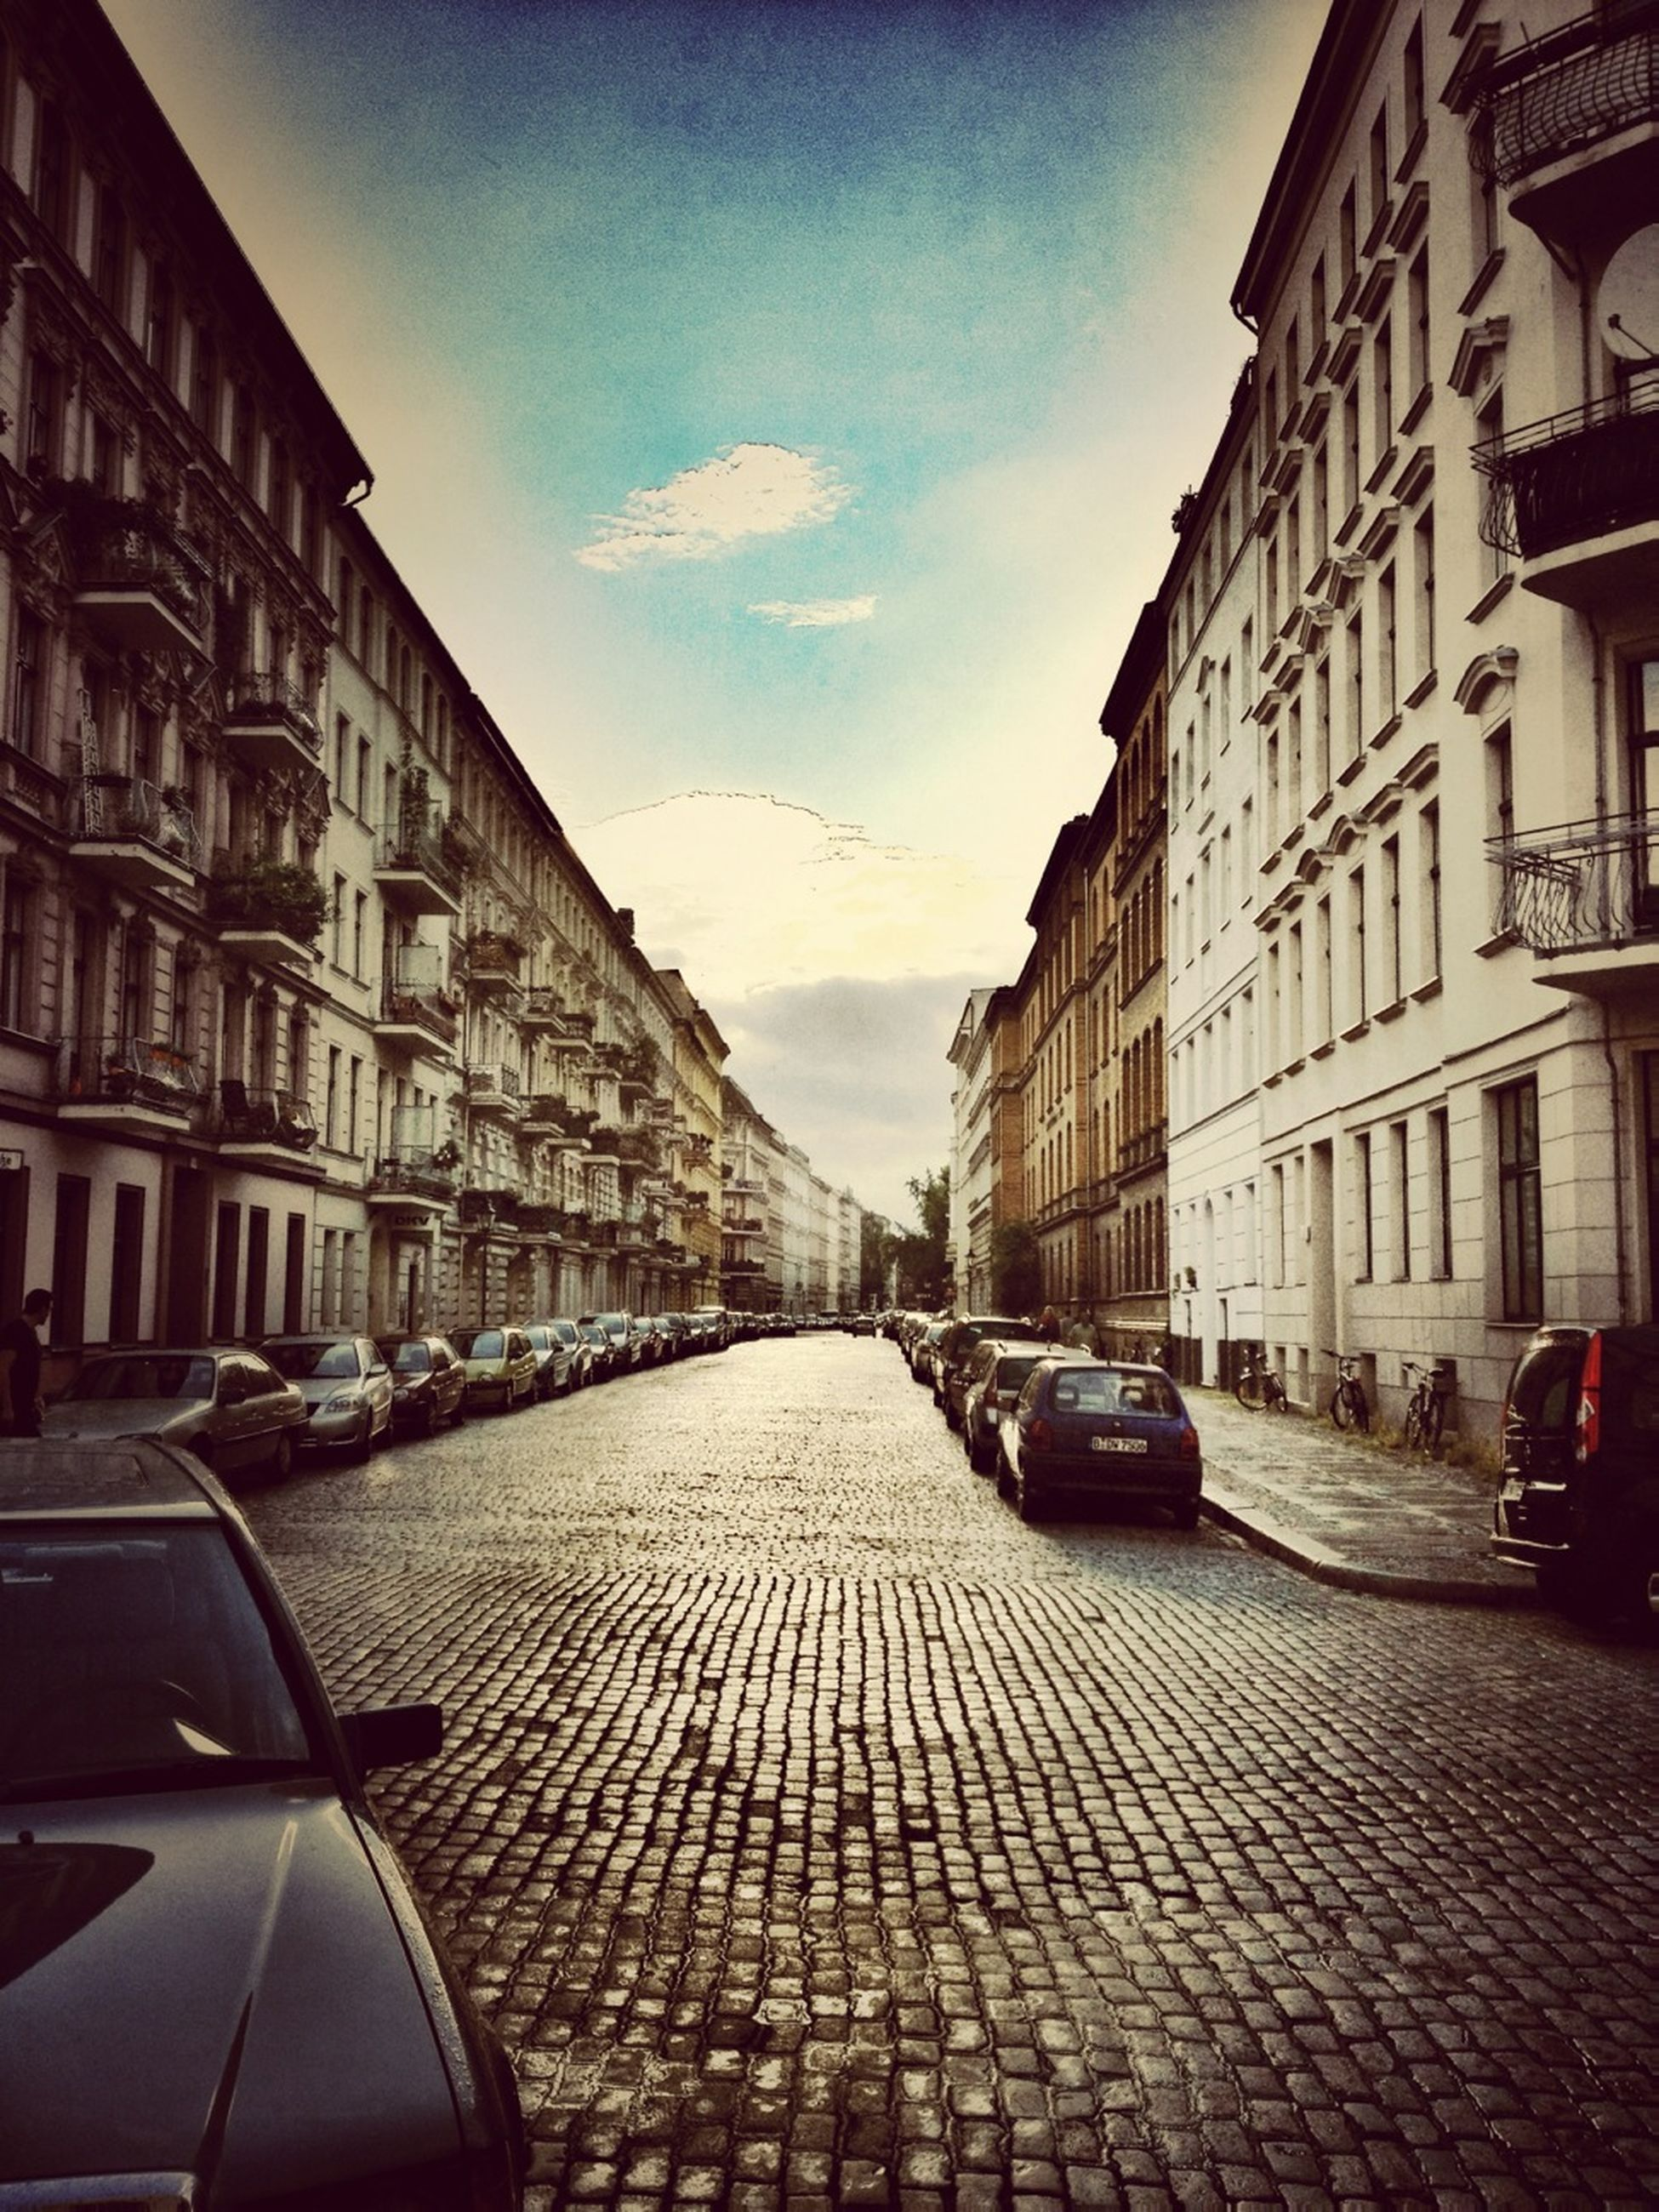 transportation, building exterior, car, architecture, built structure, mode of transport, land vehicle, street, the way forward, city, sky, diminishing perspective, road, vanishing point, road marking, travel, city street, building, cobblestone, day